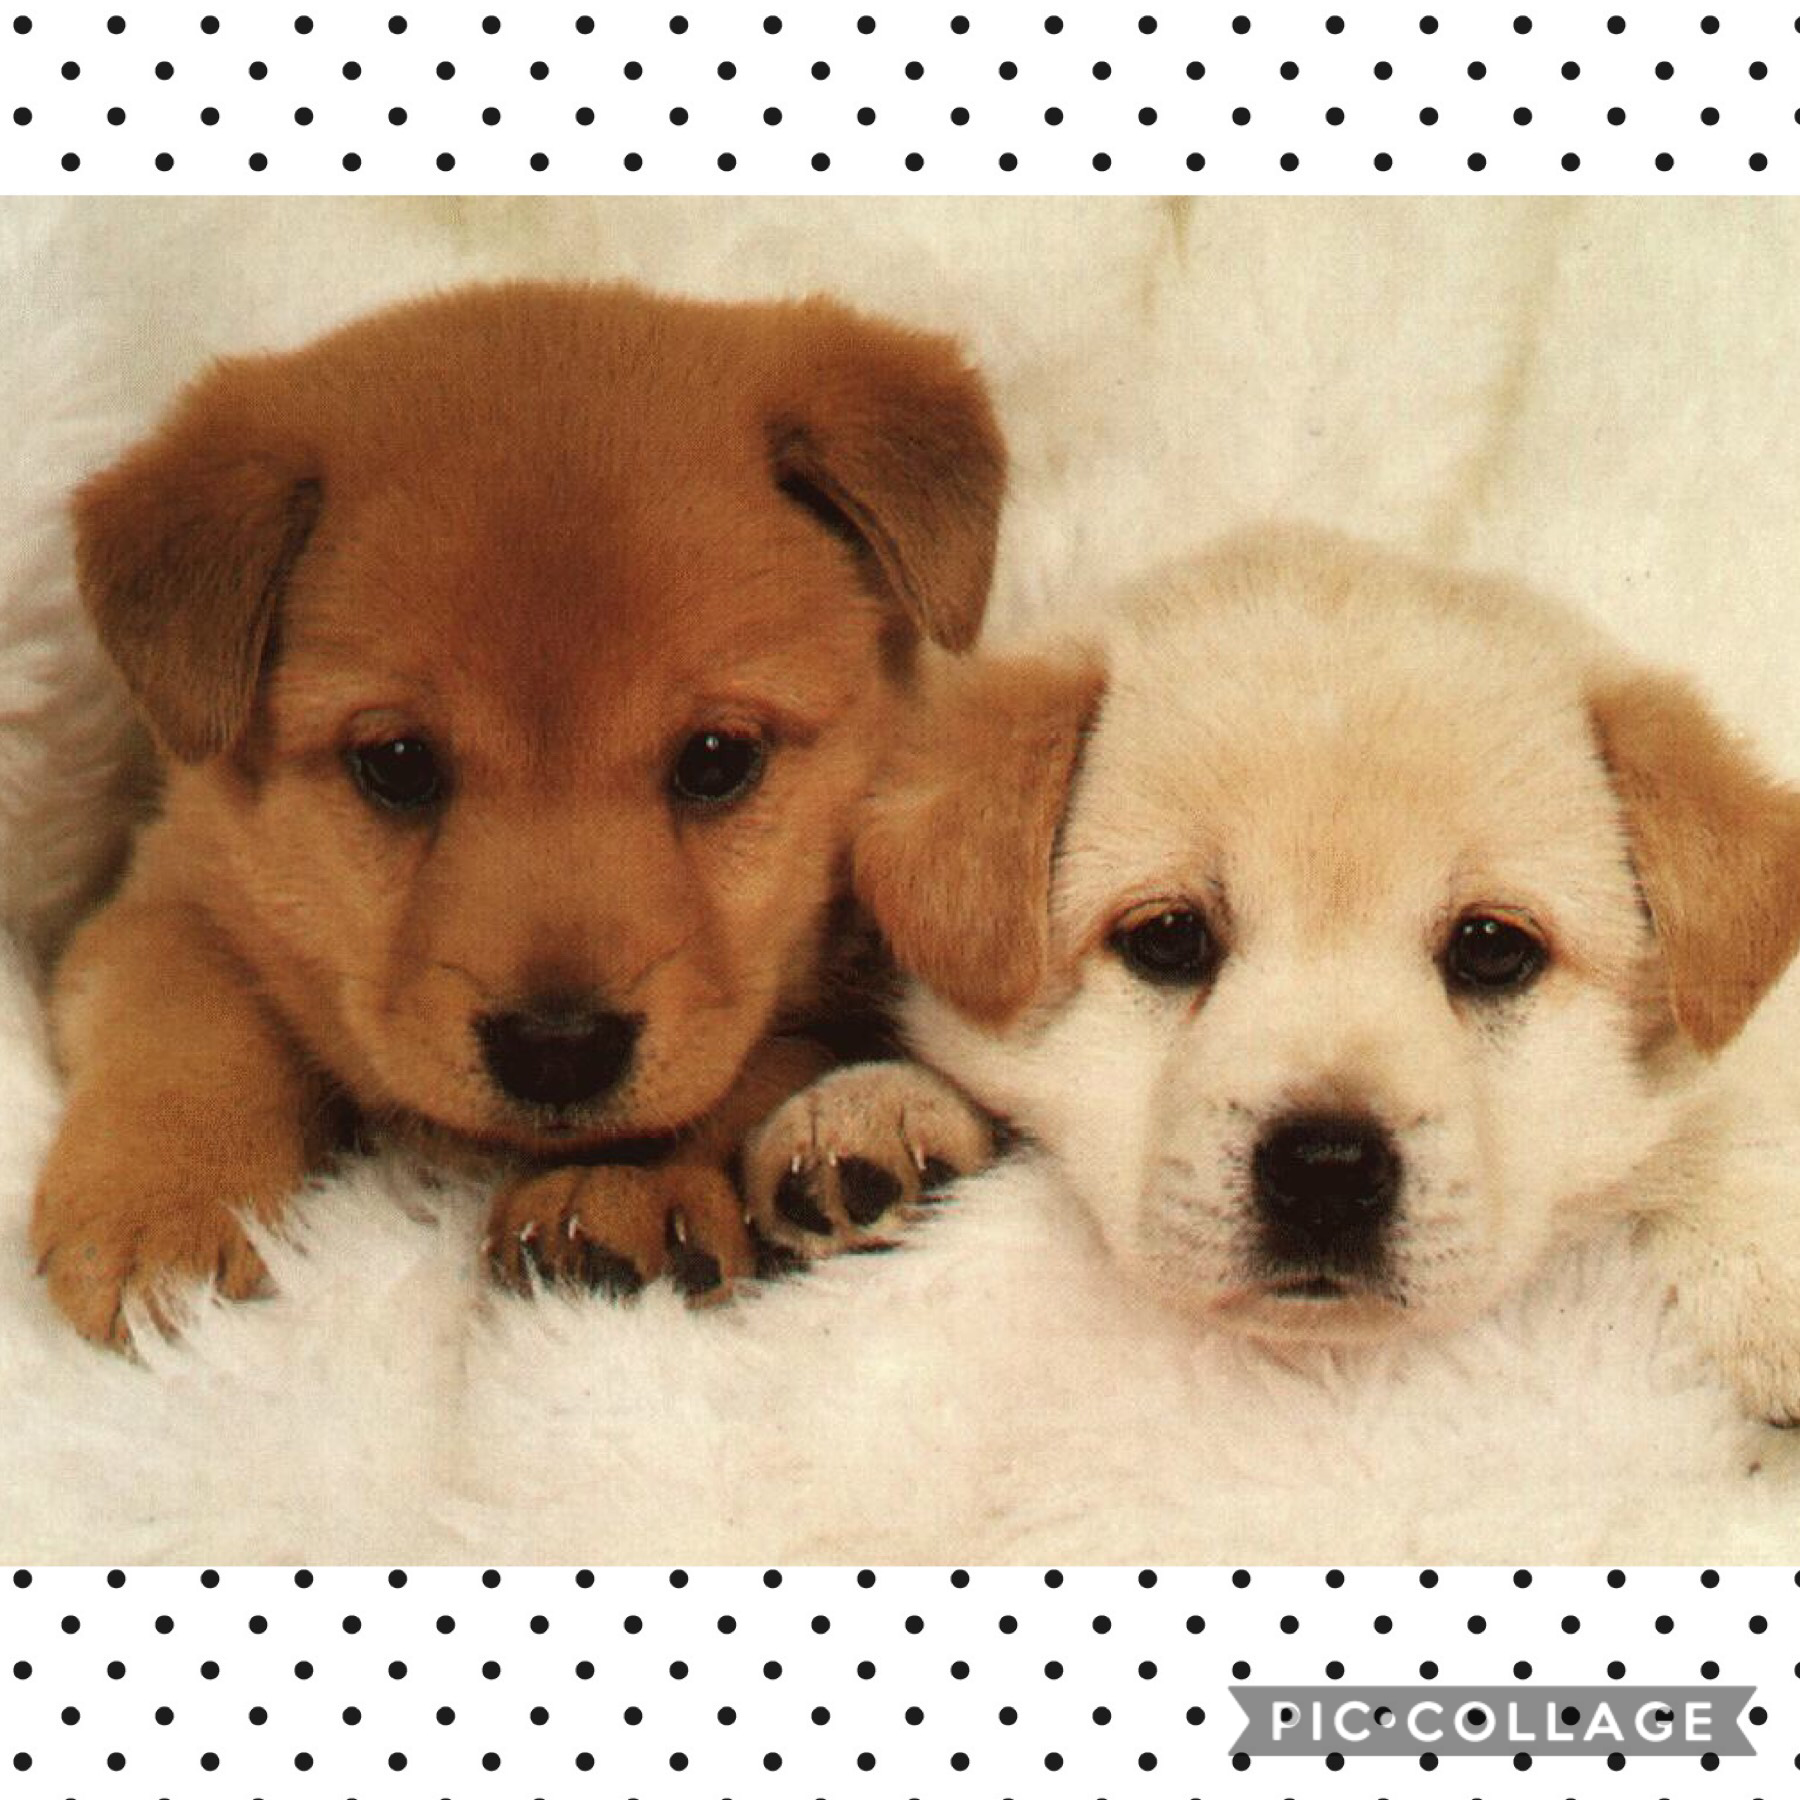 Look how cute my puppies are